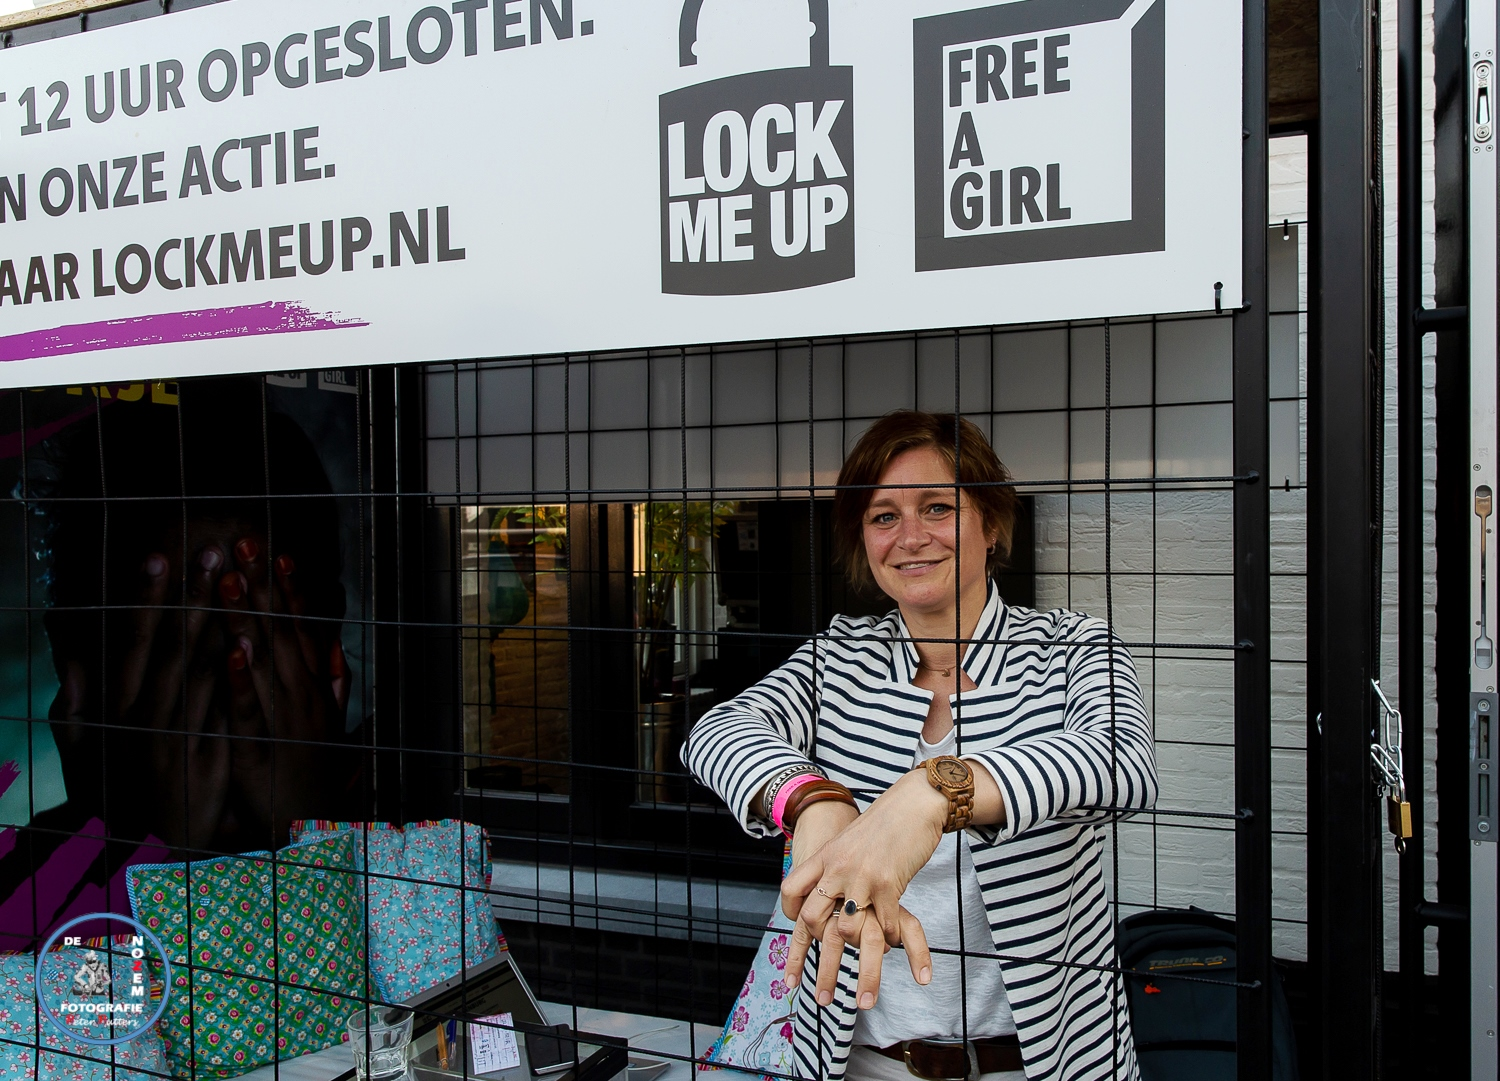 Free a girl | Lock me Up